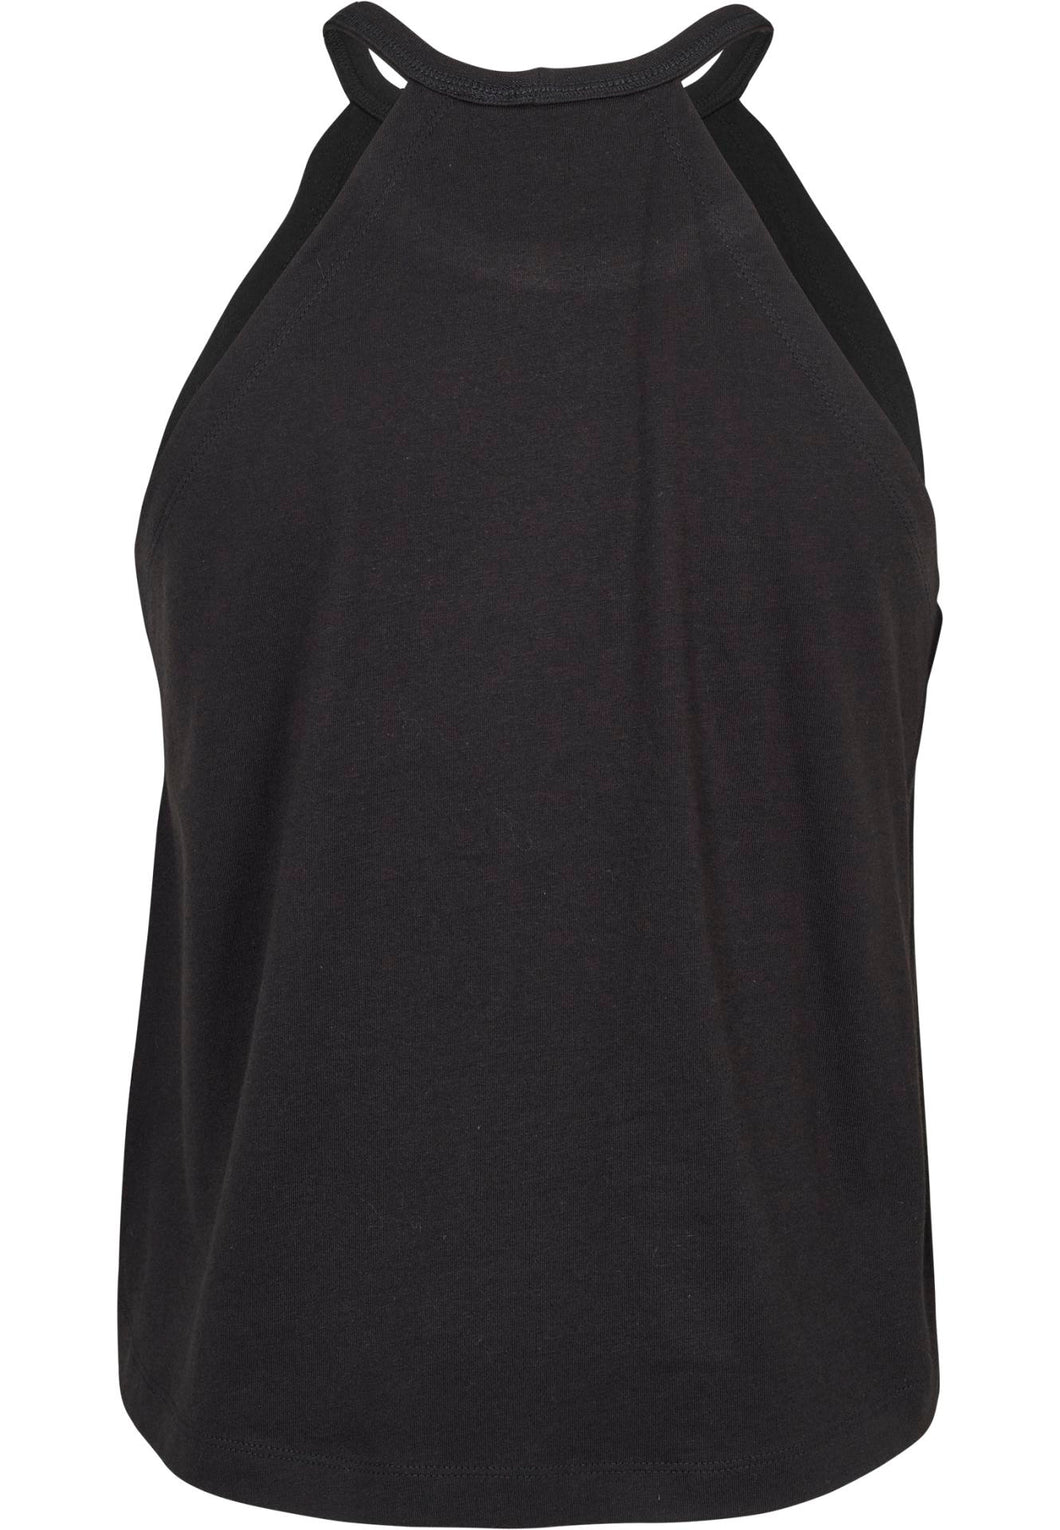 Urban Classics Floaty Vest Top - Kate's Clothing